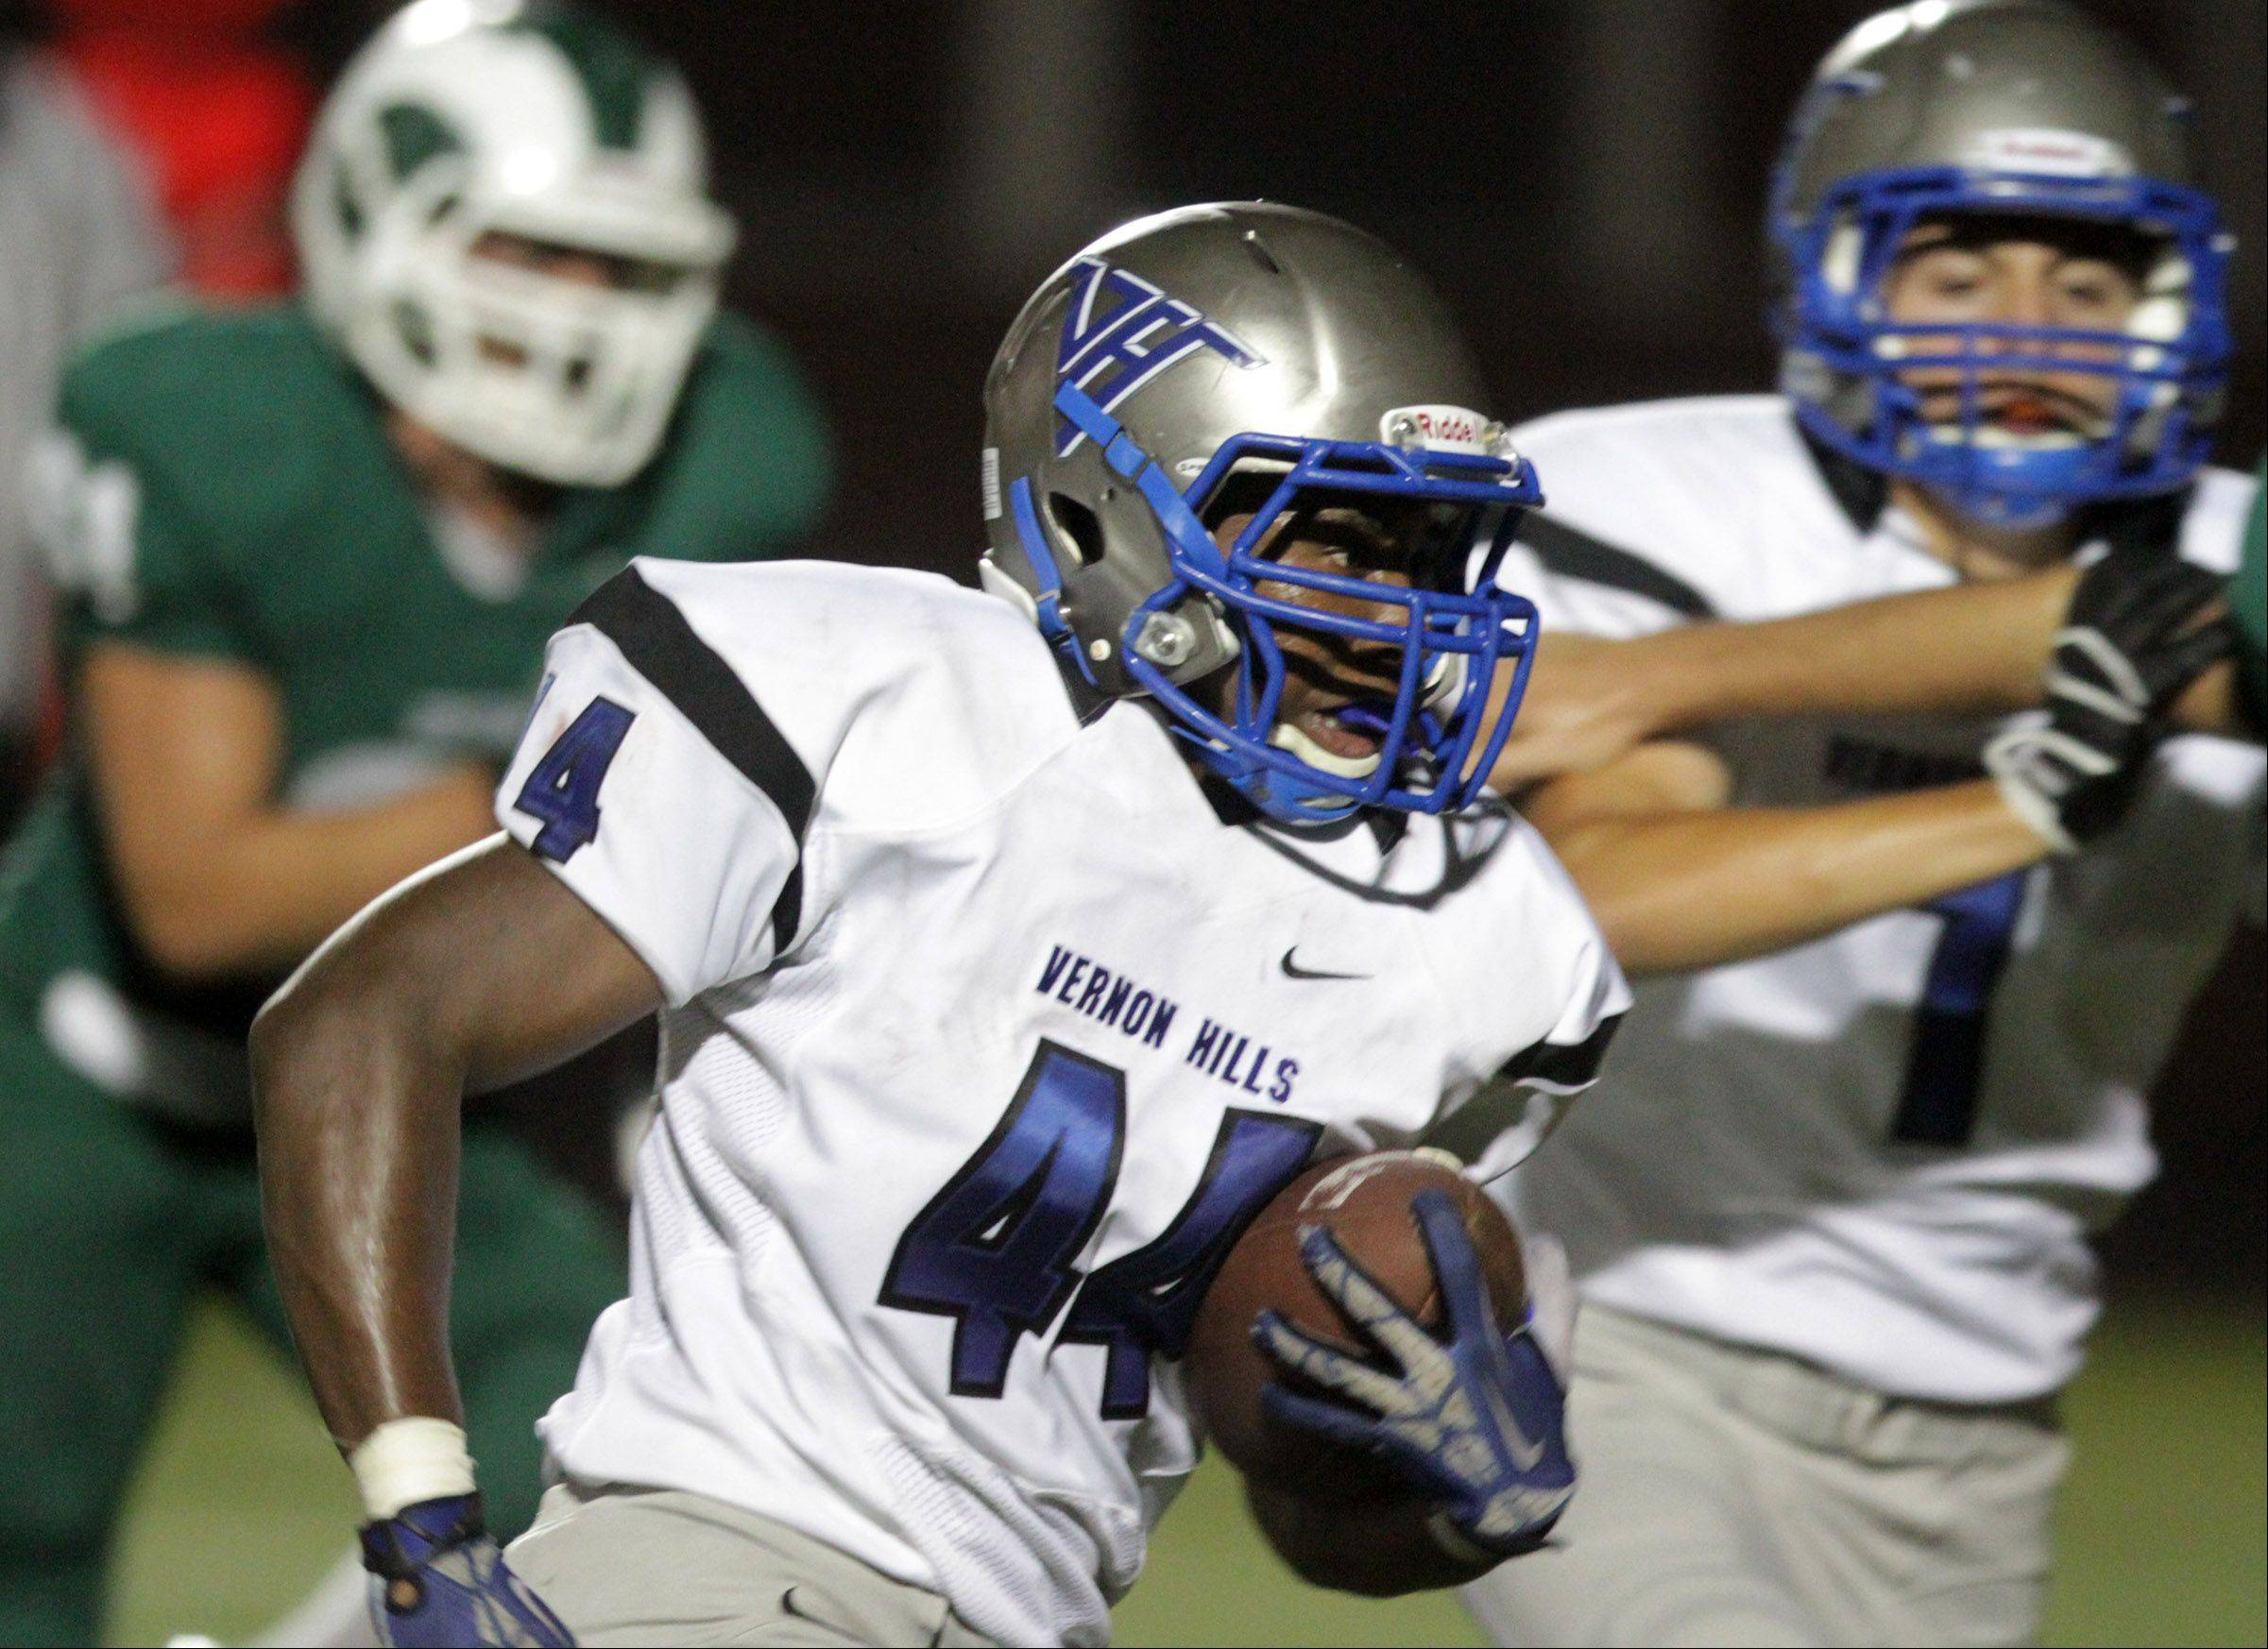 George LeClaire/gleclaire@dailyherald.com Vernon Hills' running back Kyle Thomas runs the ball against Grayslake Central at Grayslake Central on Friday, September 6, 2013.